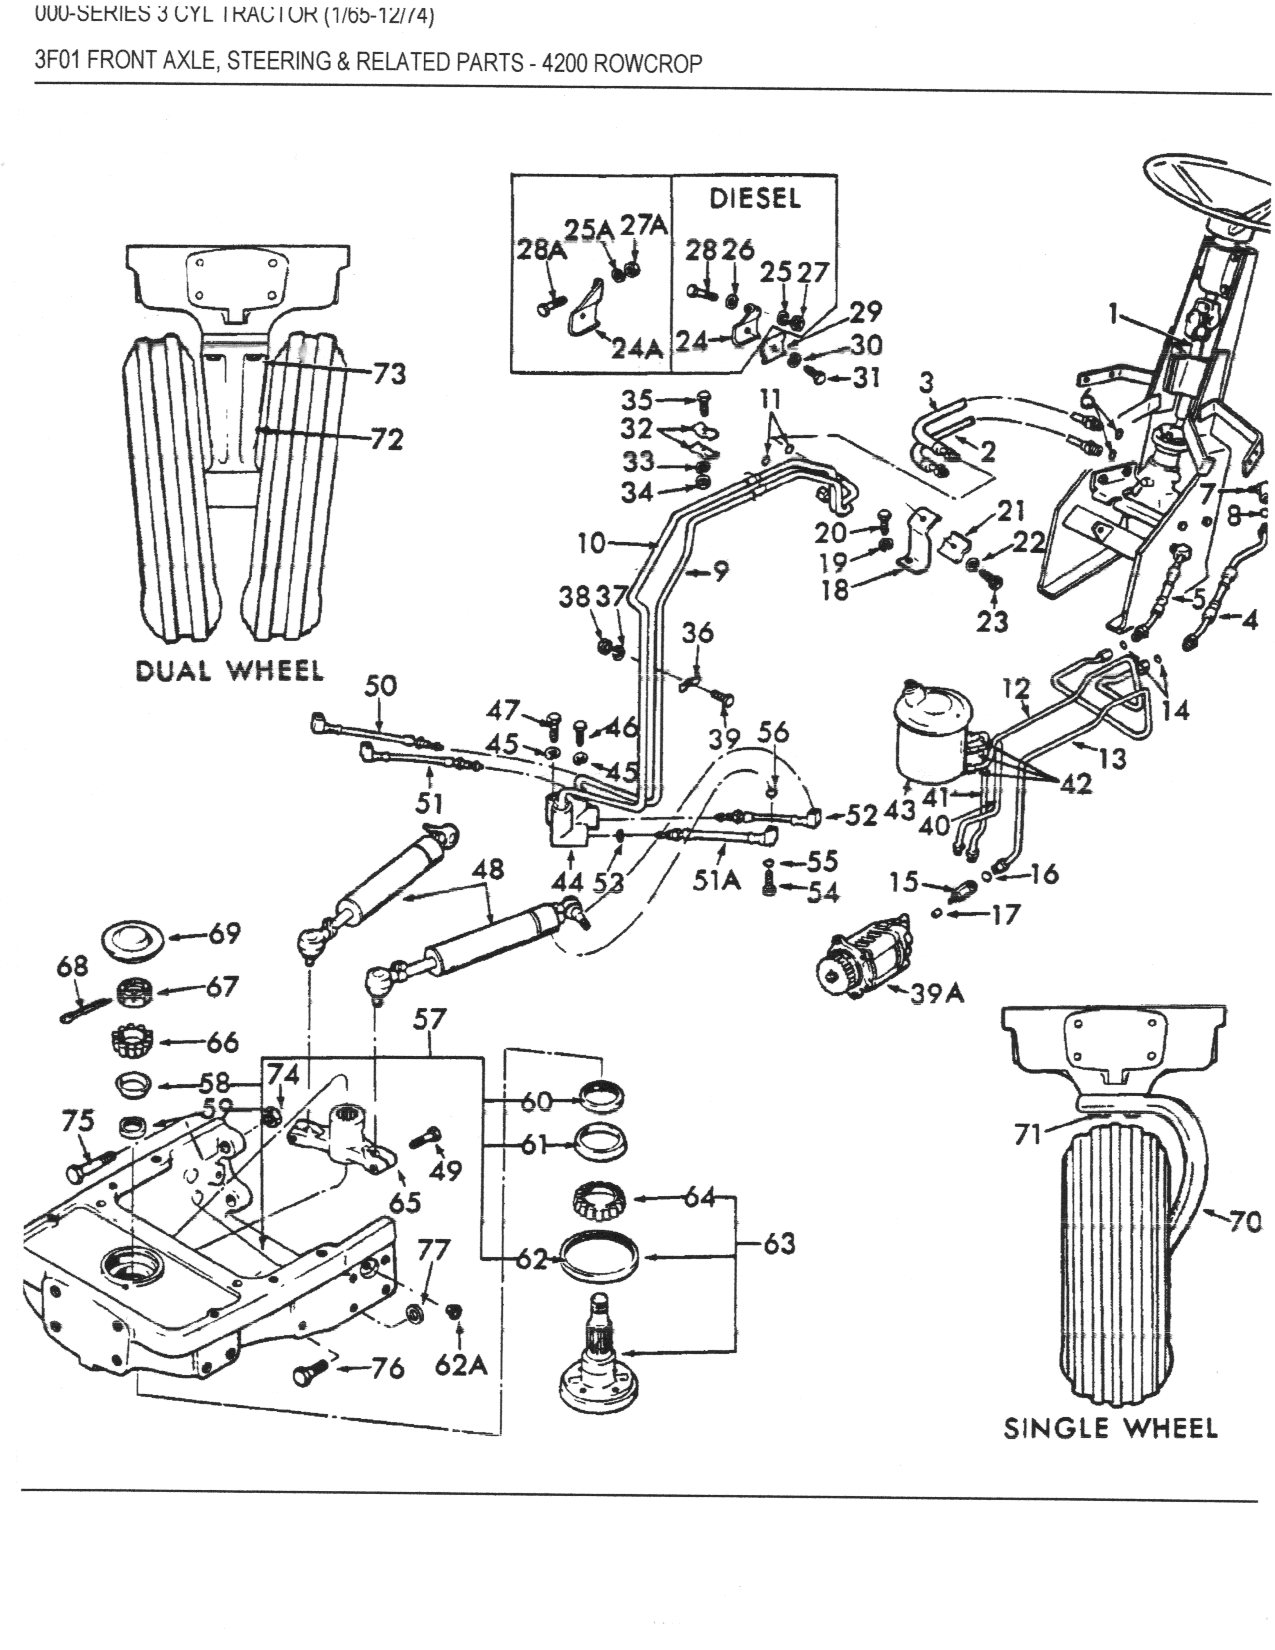 4600 ford tractor steering diagram search for wiring diagrams u2022 rh idijournal com Ford 4600 Diesel Tractor Wiring Schematic Ford 4600 Diesel Tractor Wiring Schematic